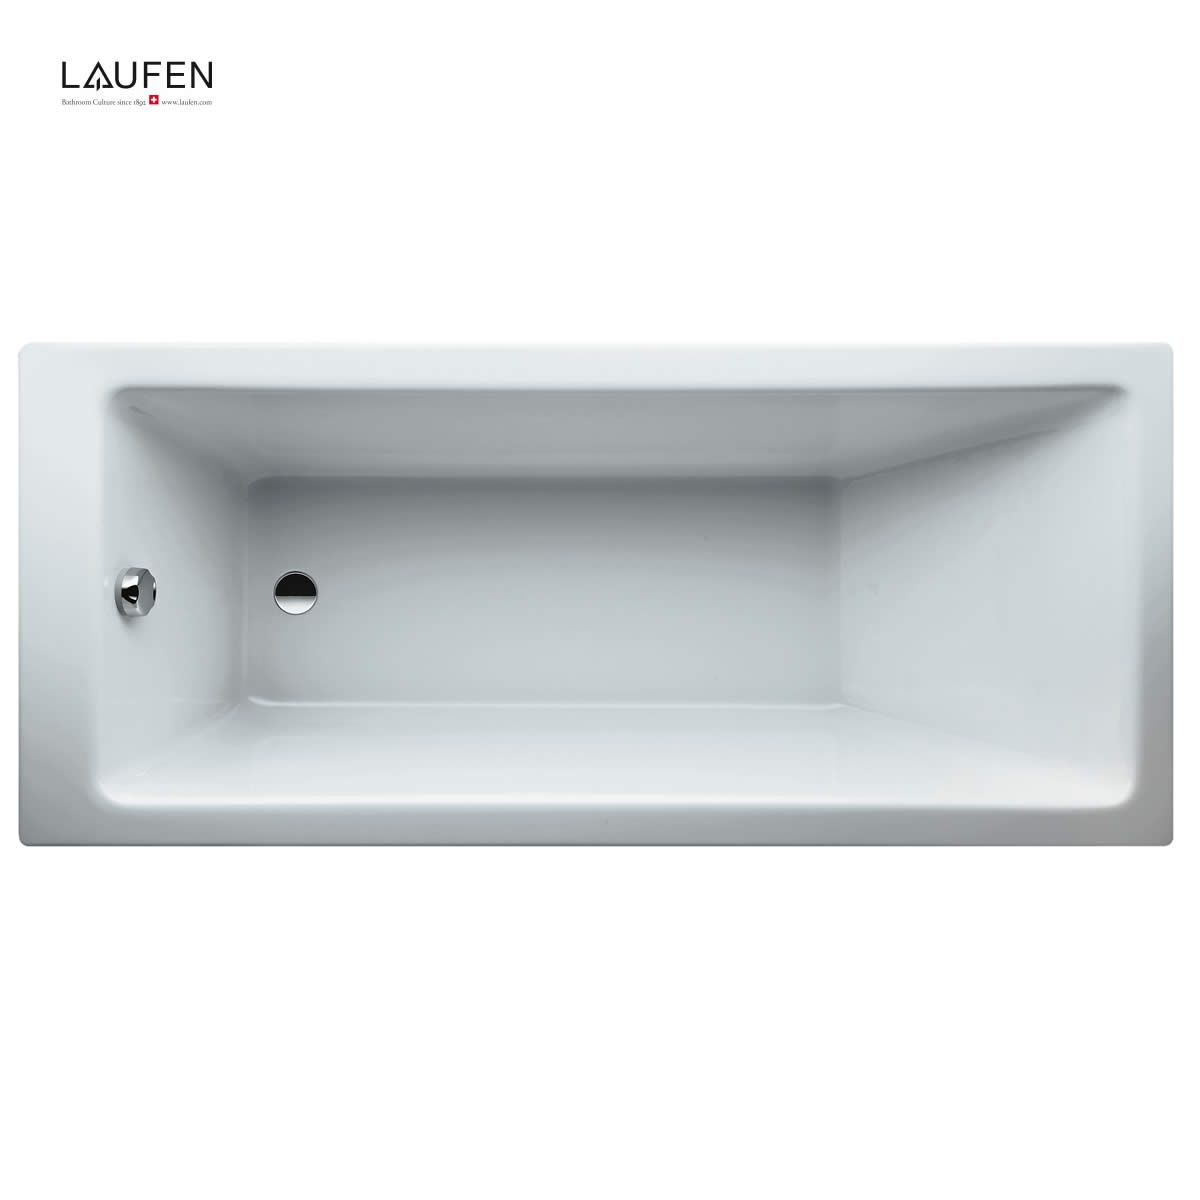 Laufen Pro Rectangular Acrylic Single Ended Bath Uk